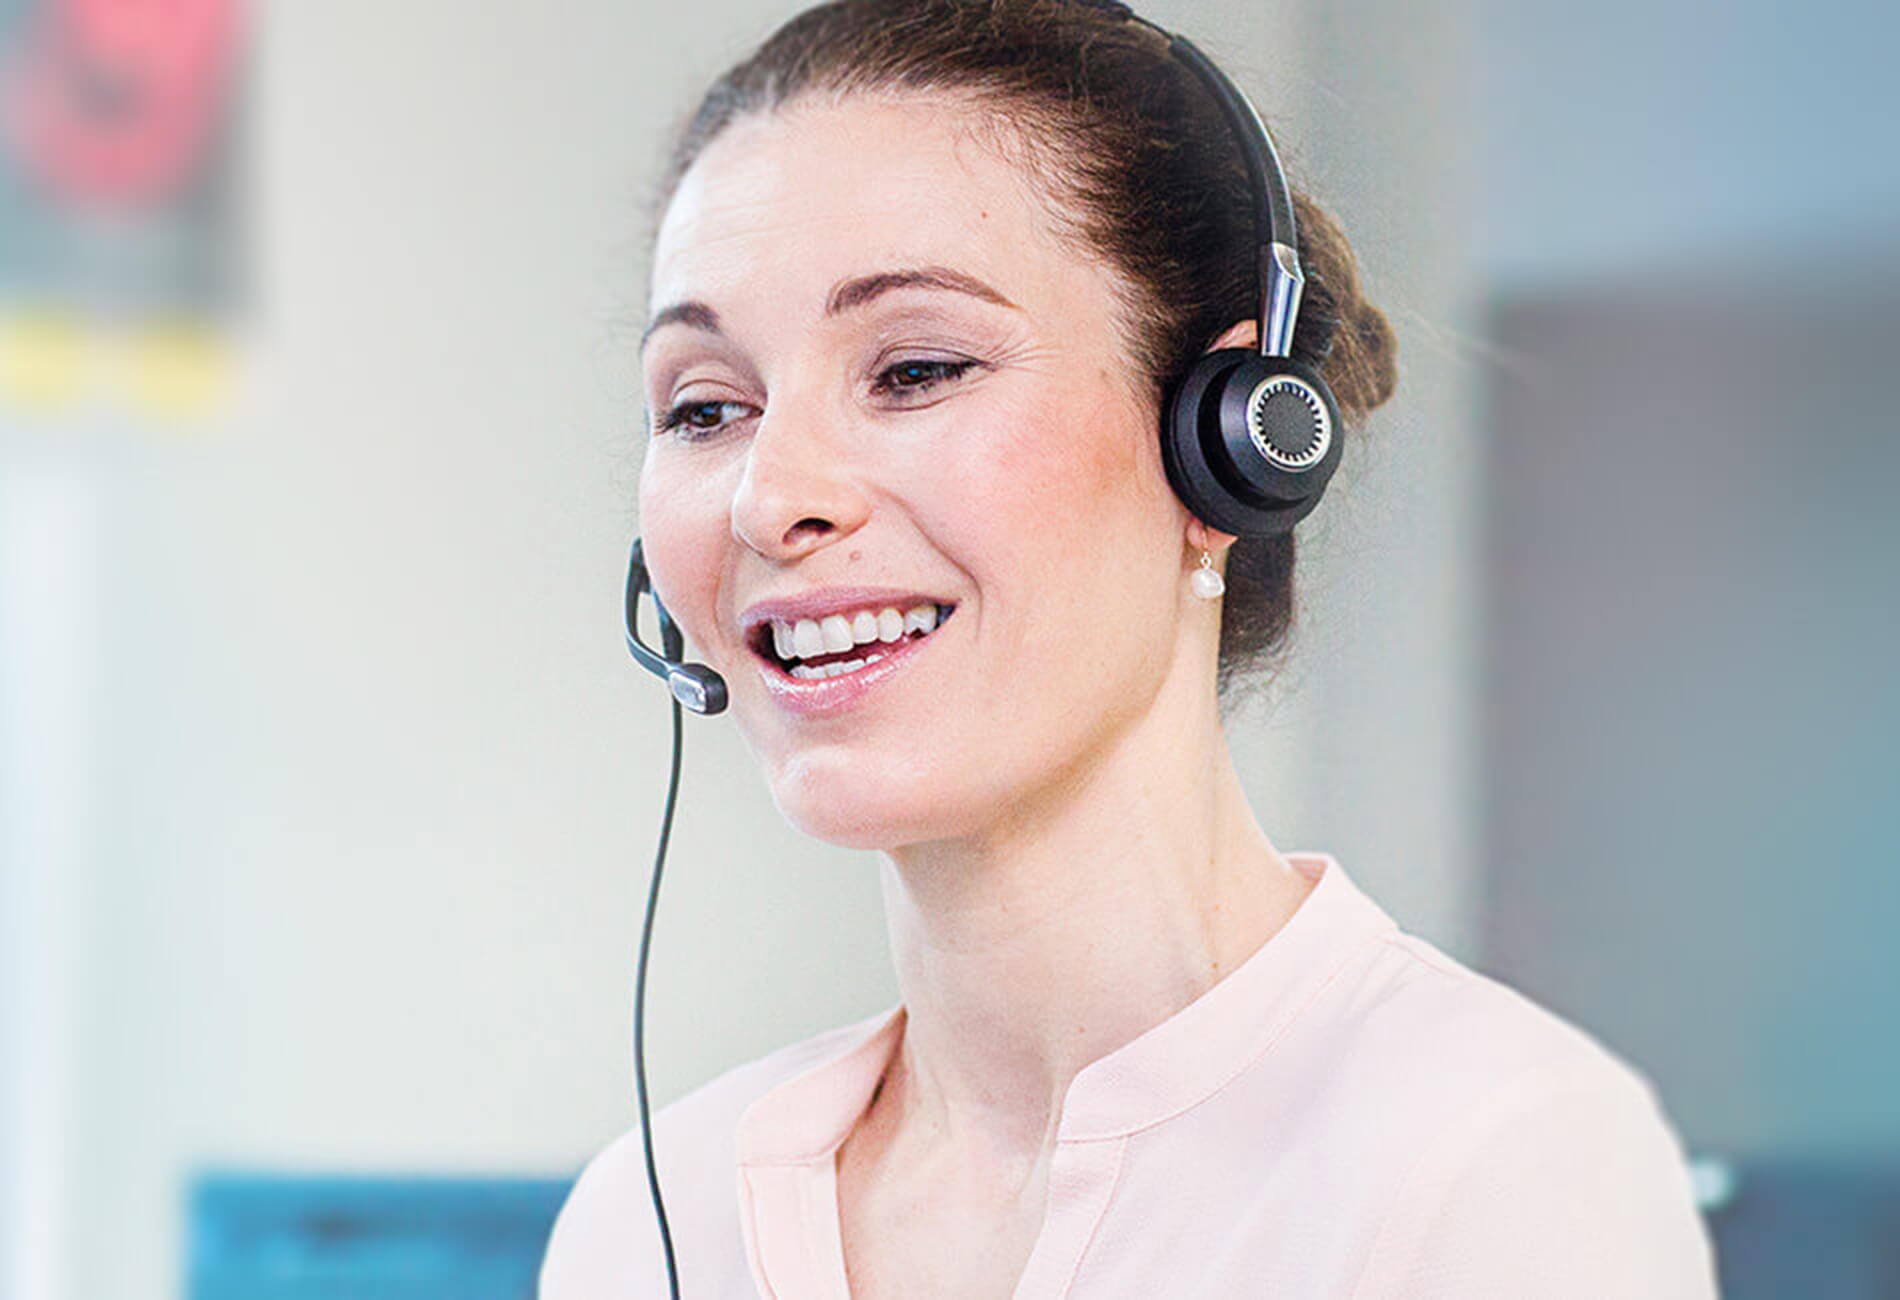 contact center headsets call center headsets with noise cancellation. Black Bedroom Furniture Sets. Home Design Ideas